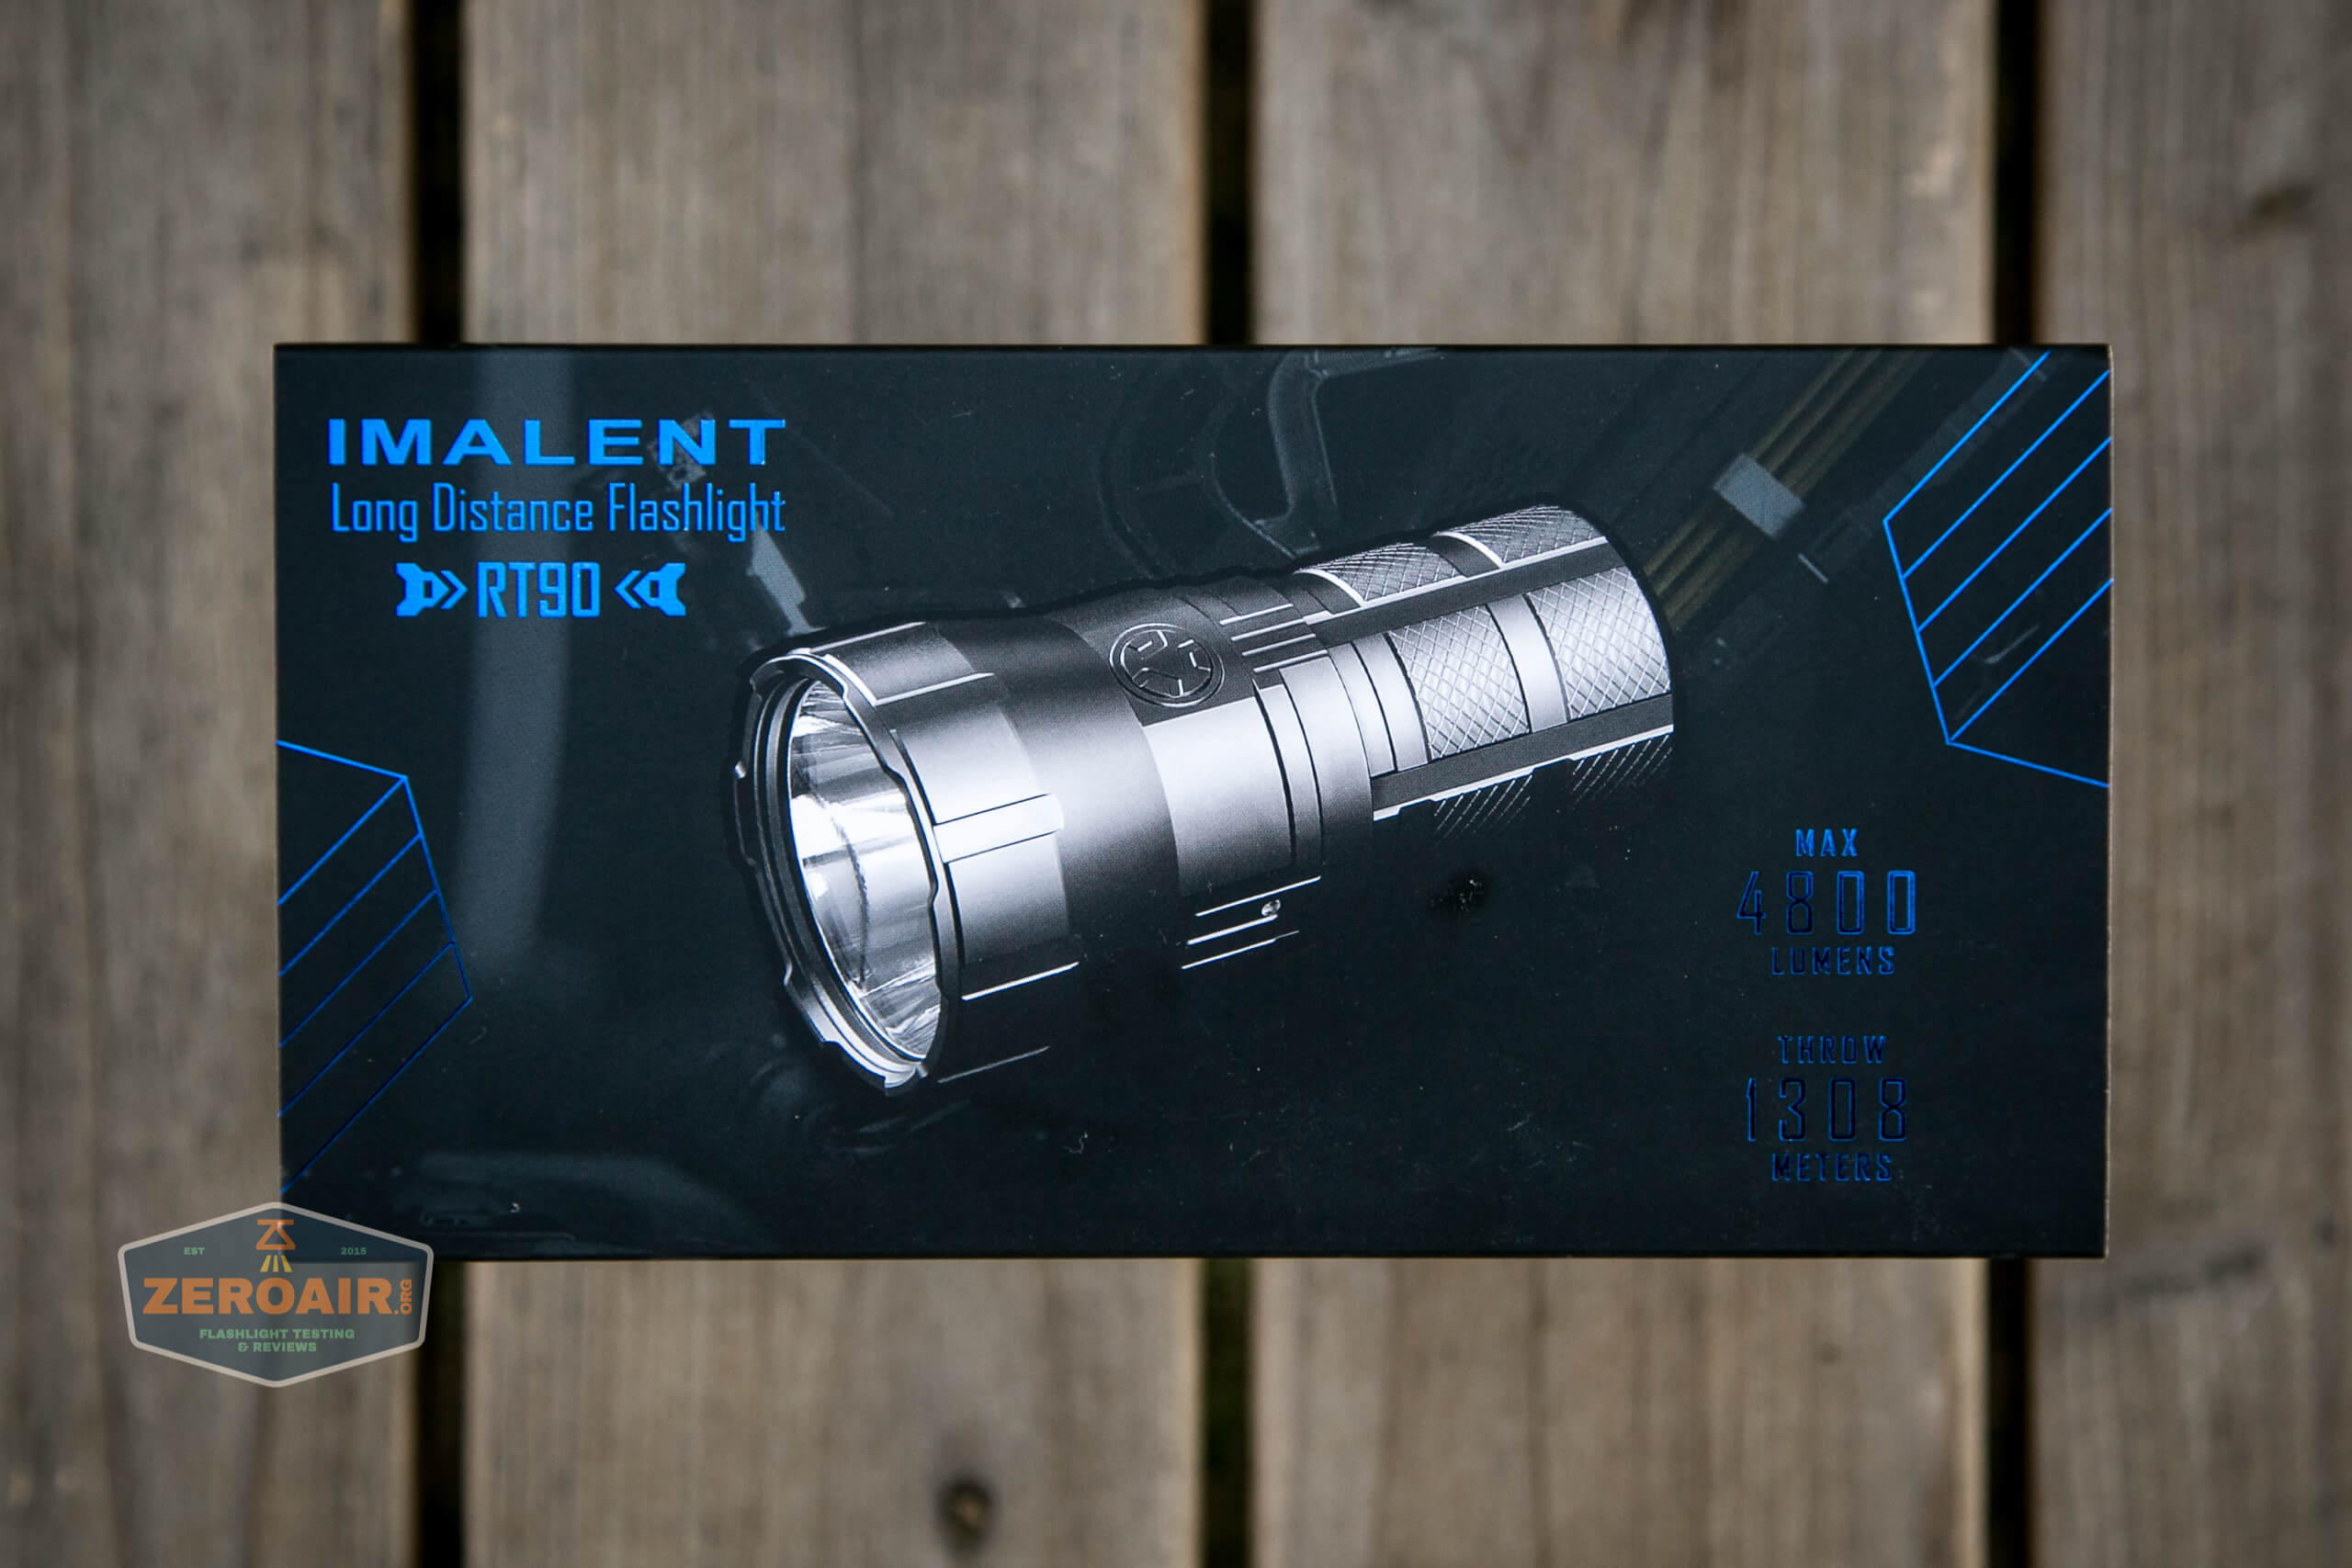 Imalent RT90 Luminus SBT-90.2 Flashlight box